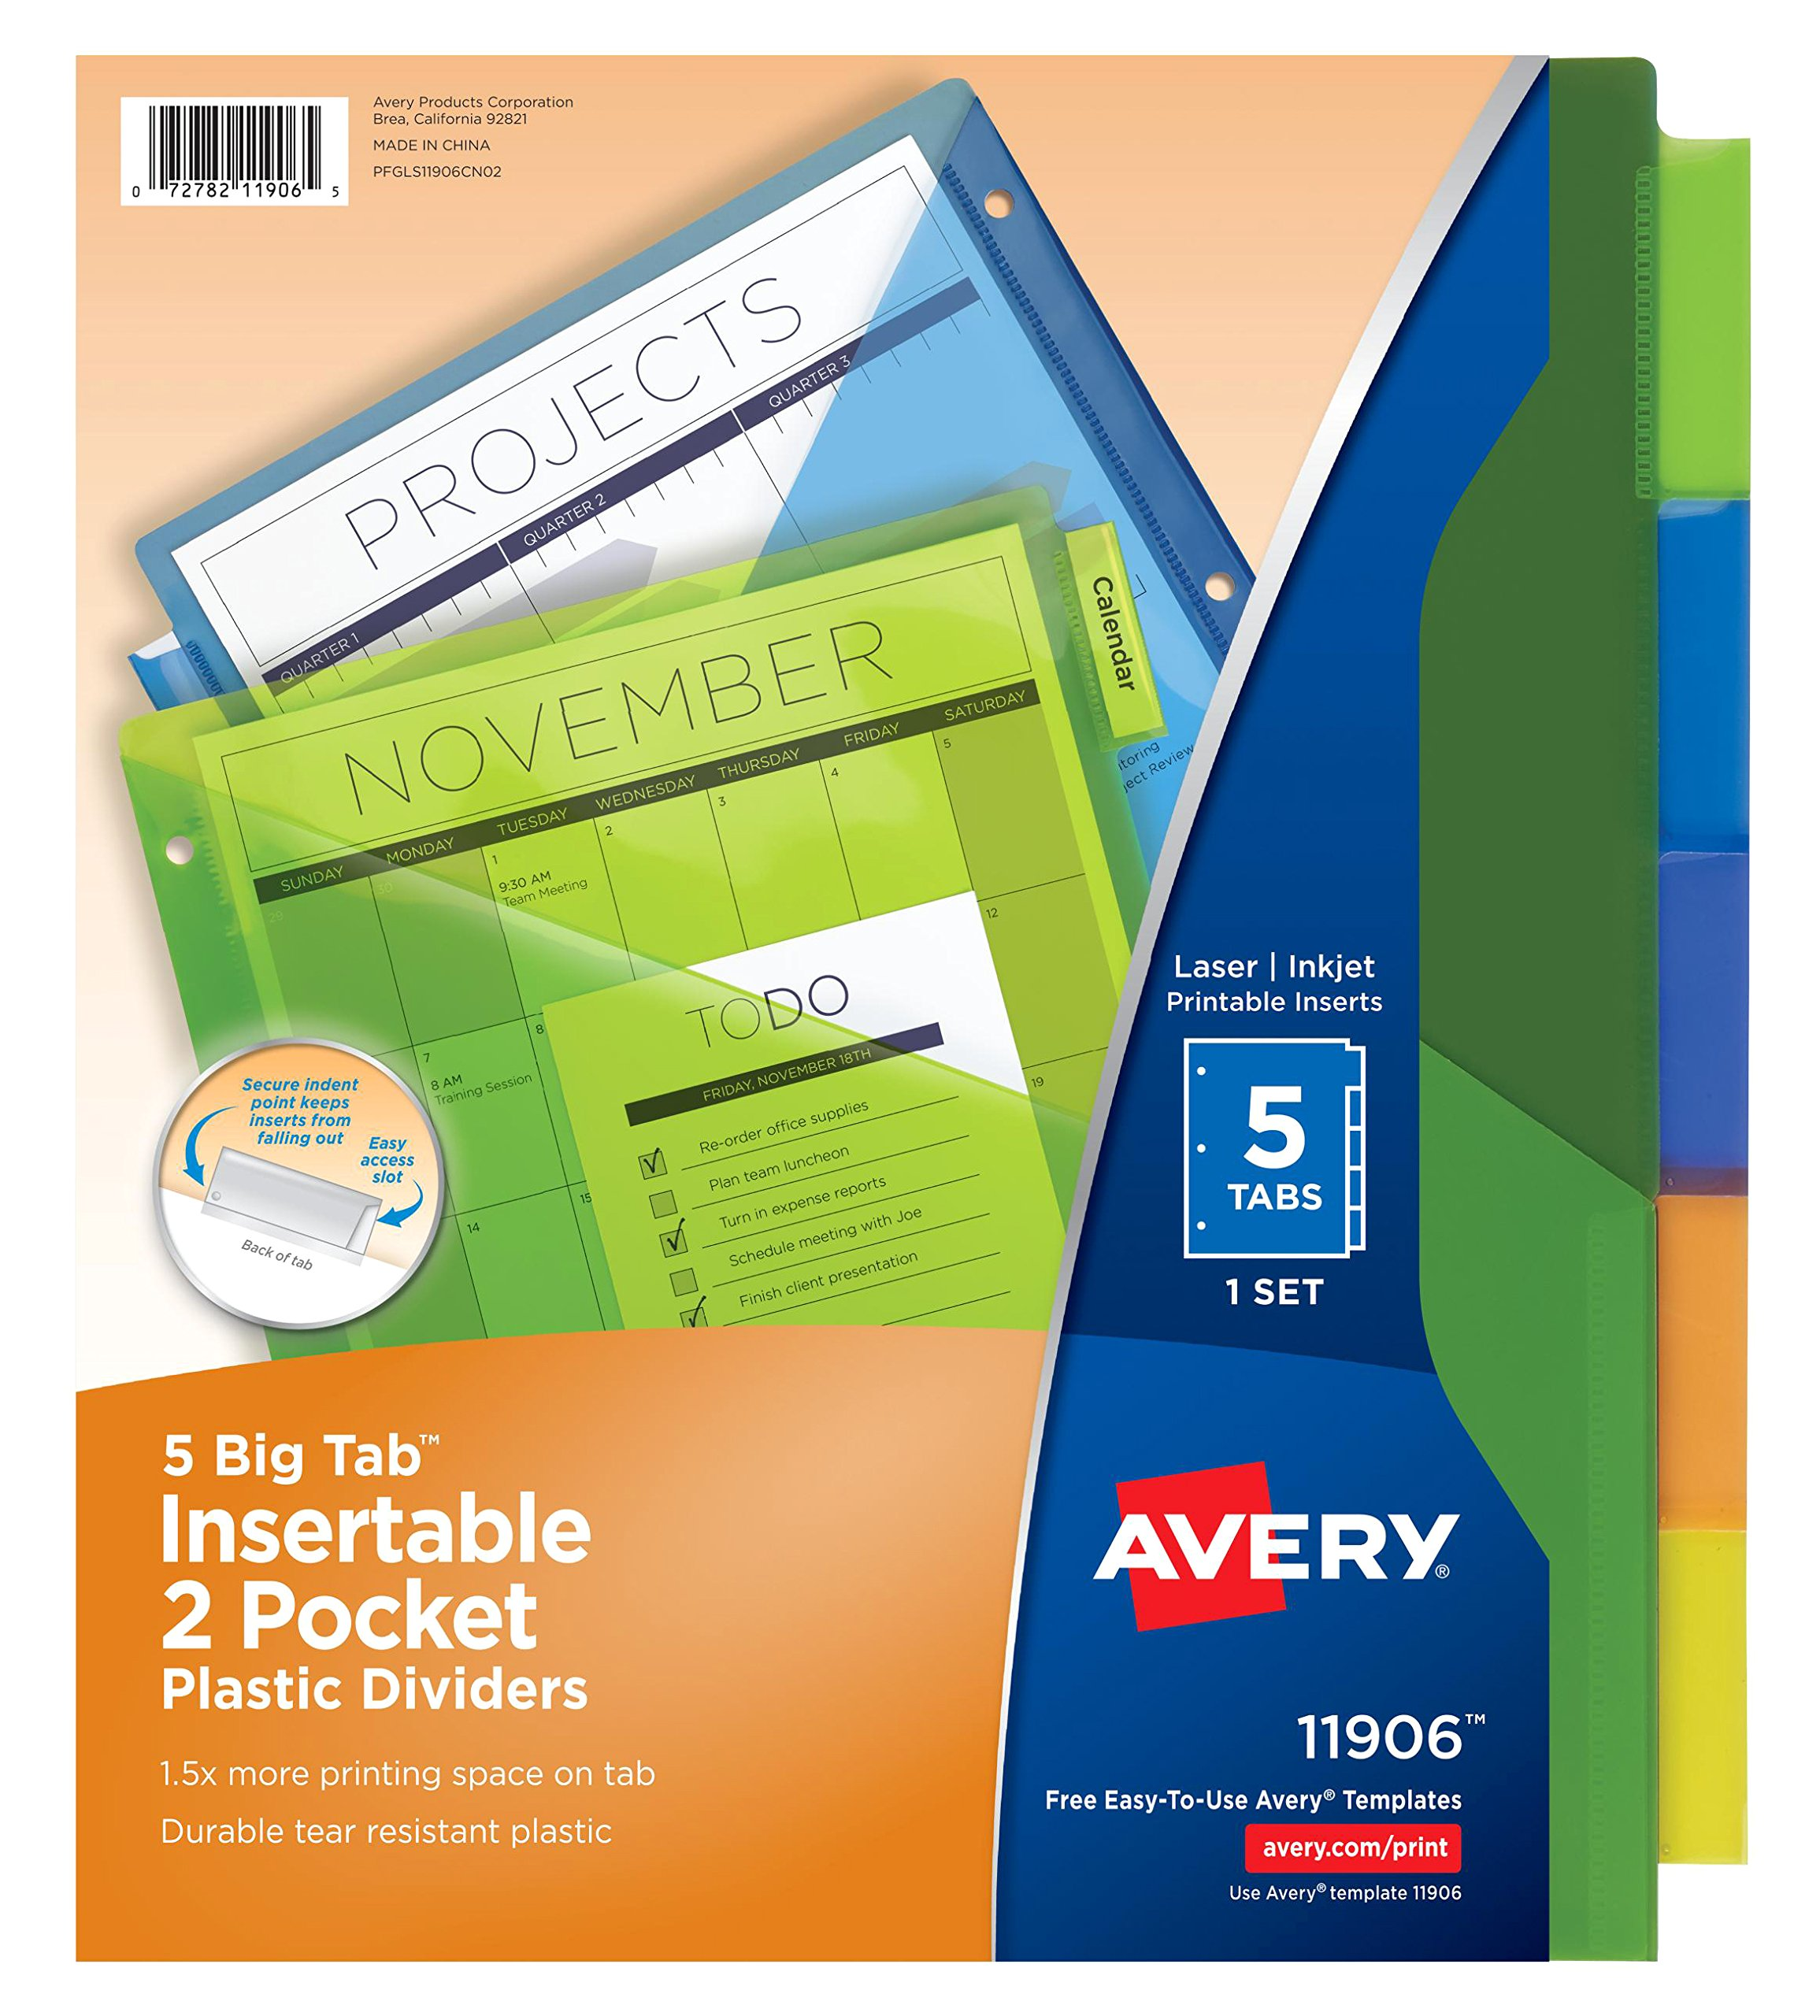 Avery Big Tab Insertable Two-Pocket Plastic Dividers, 5 Multicolor Tabs, Case Pack of 24 Sets (11906) by Avery